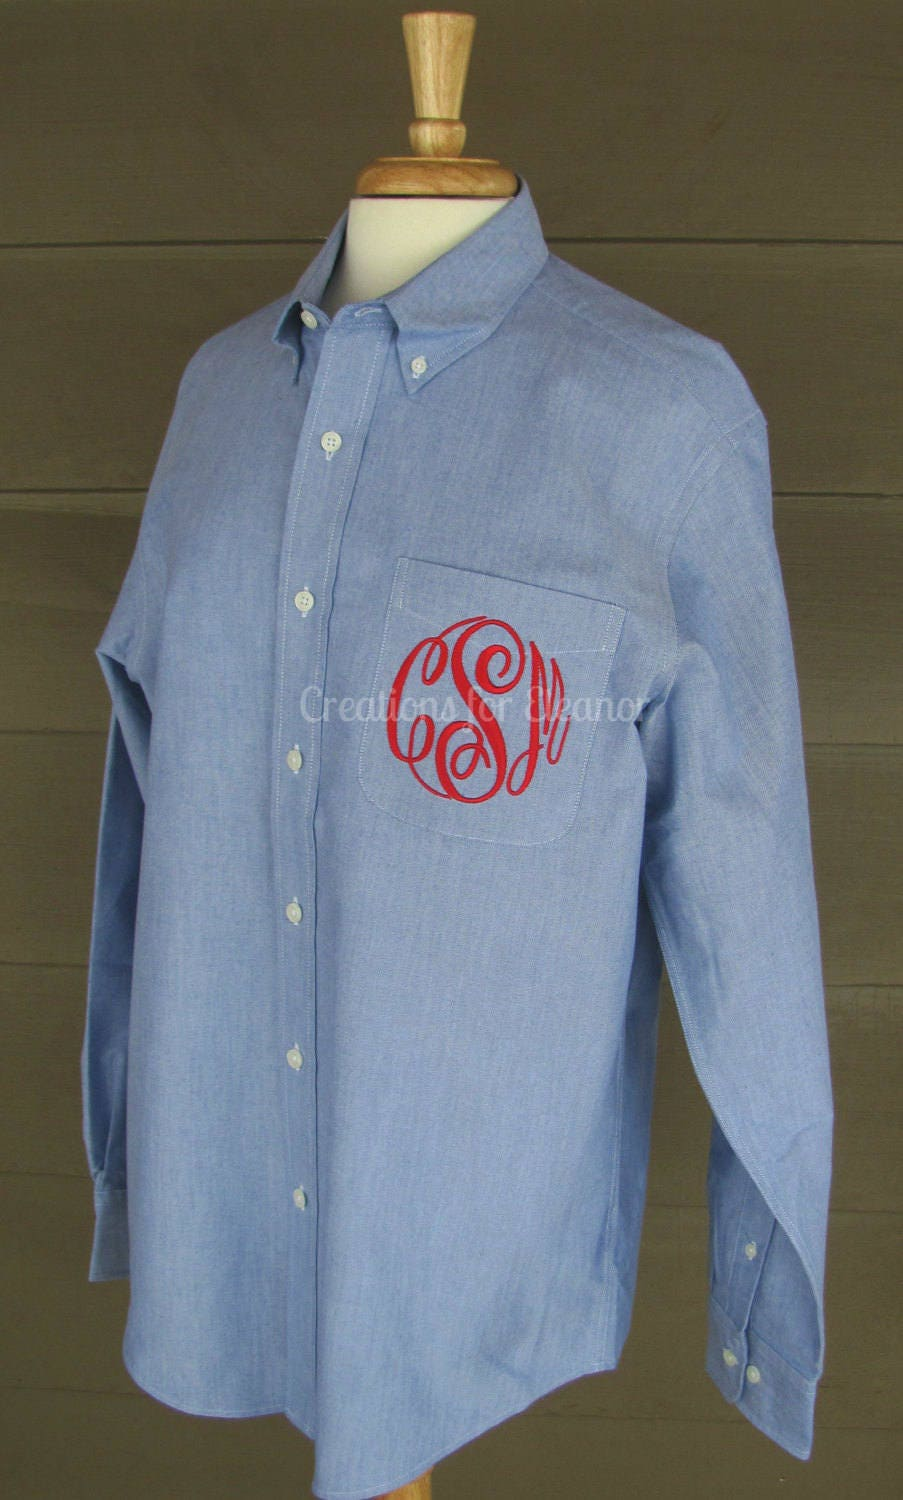 Oversized Mens Monogrammed Shirts For Brides Bridesmaids